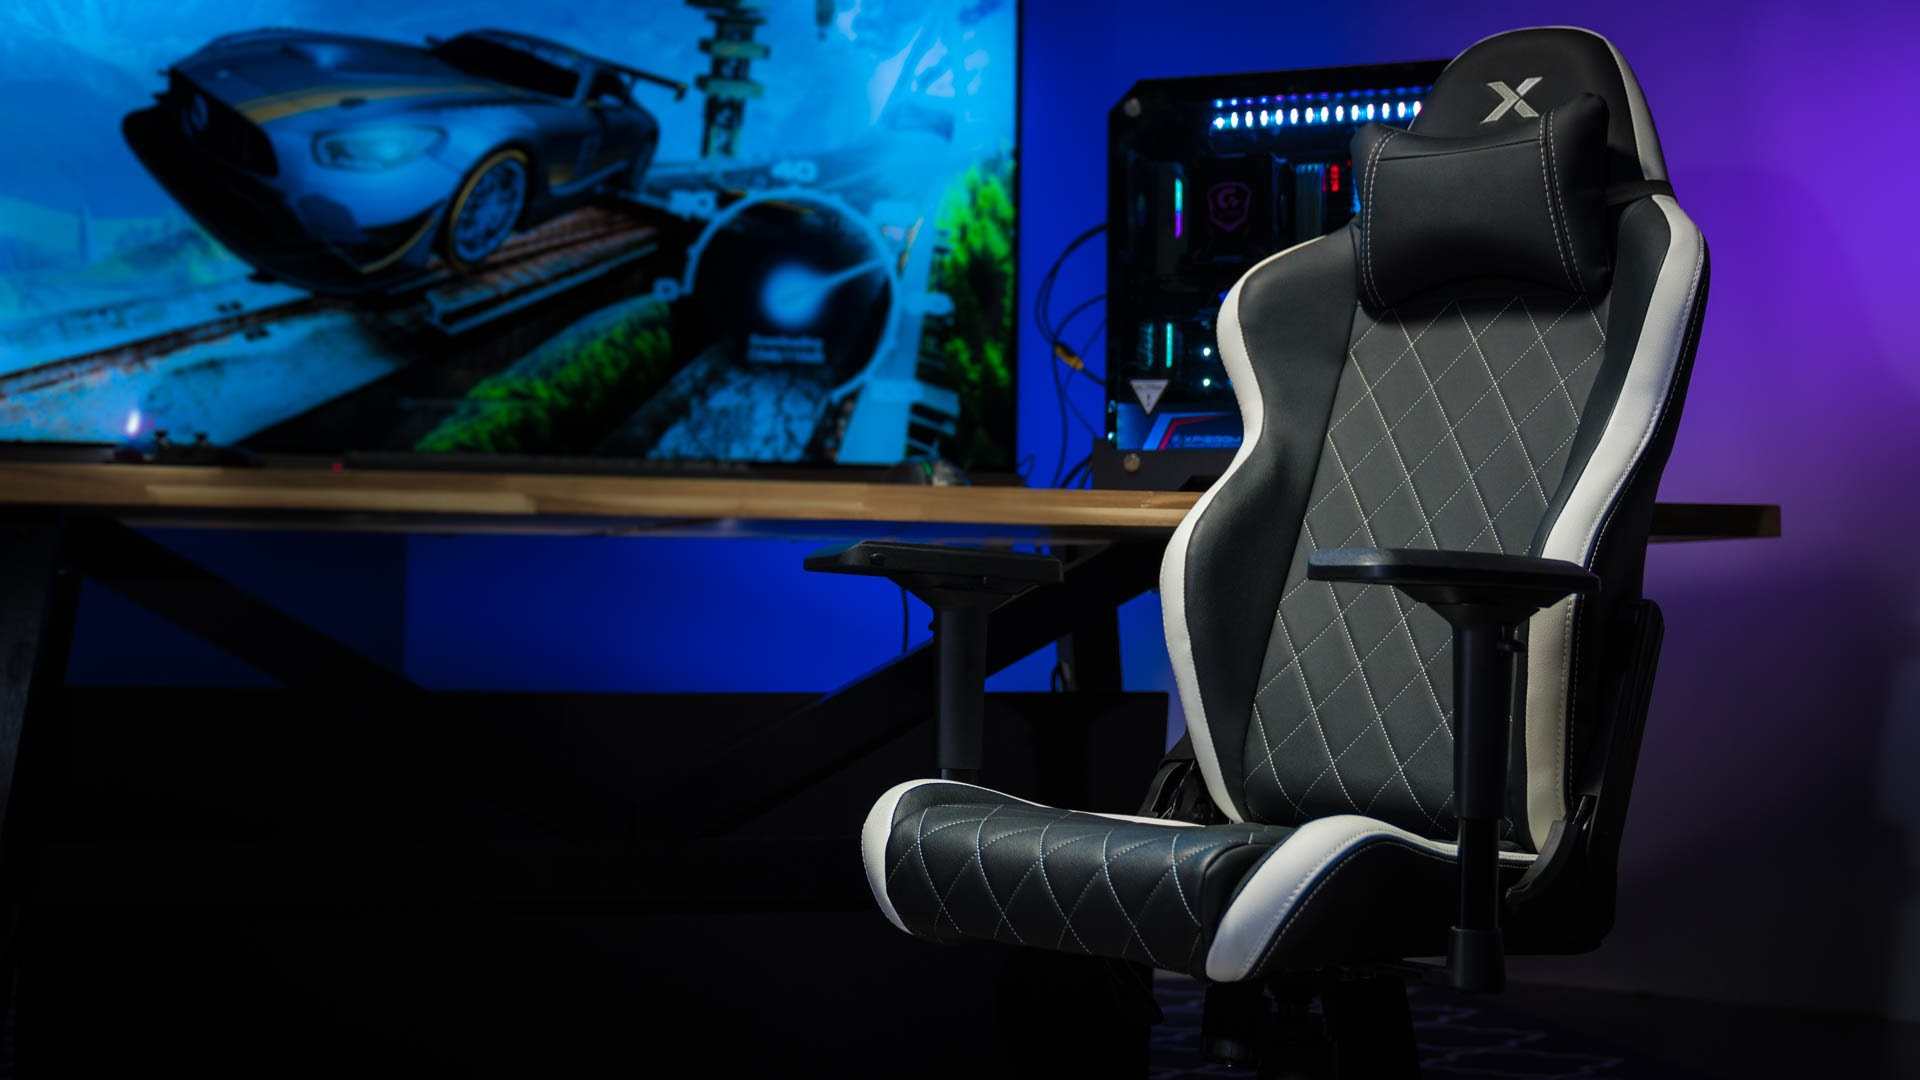 Most Comfortable Chair For Gaming 7 Ergonomic Gaming Chairs To Buy On A Budget The Koalition